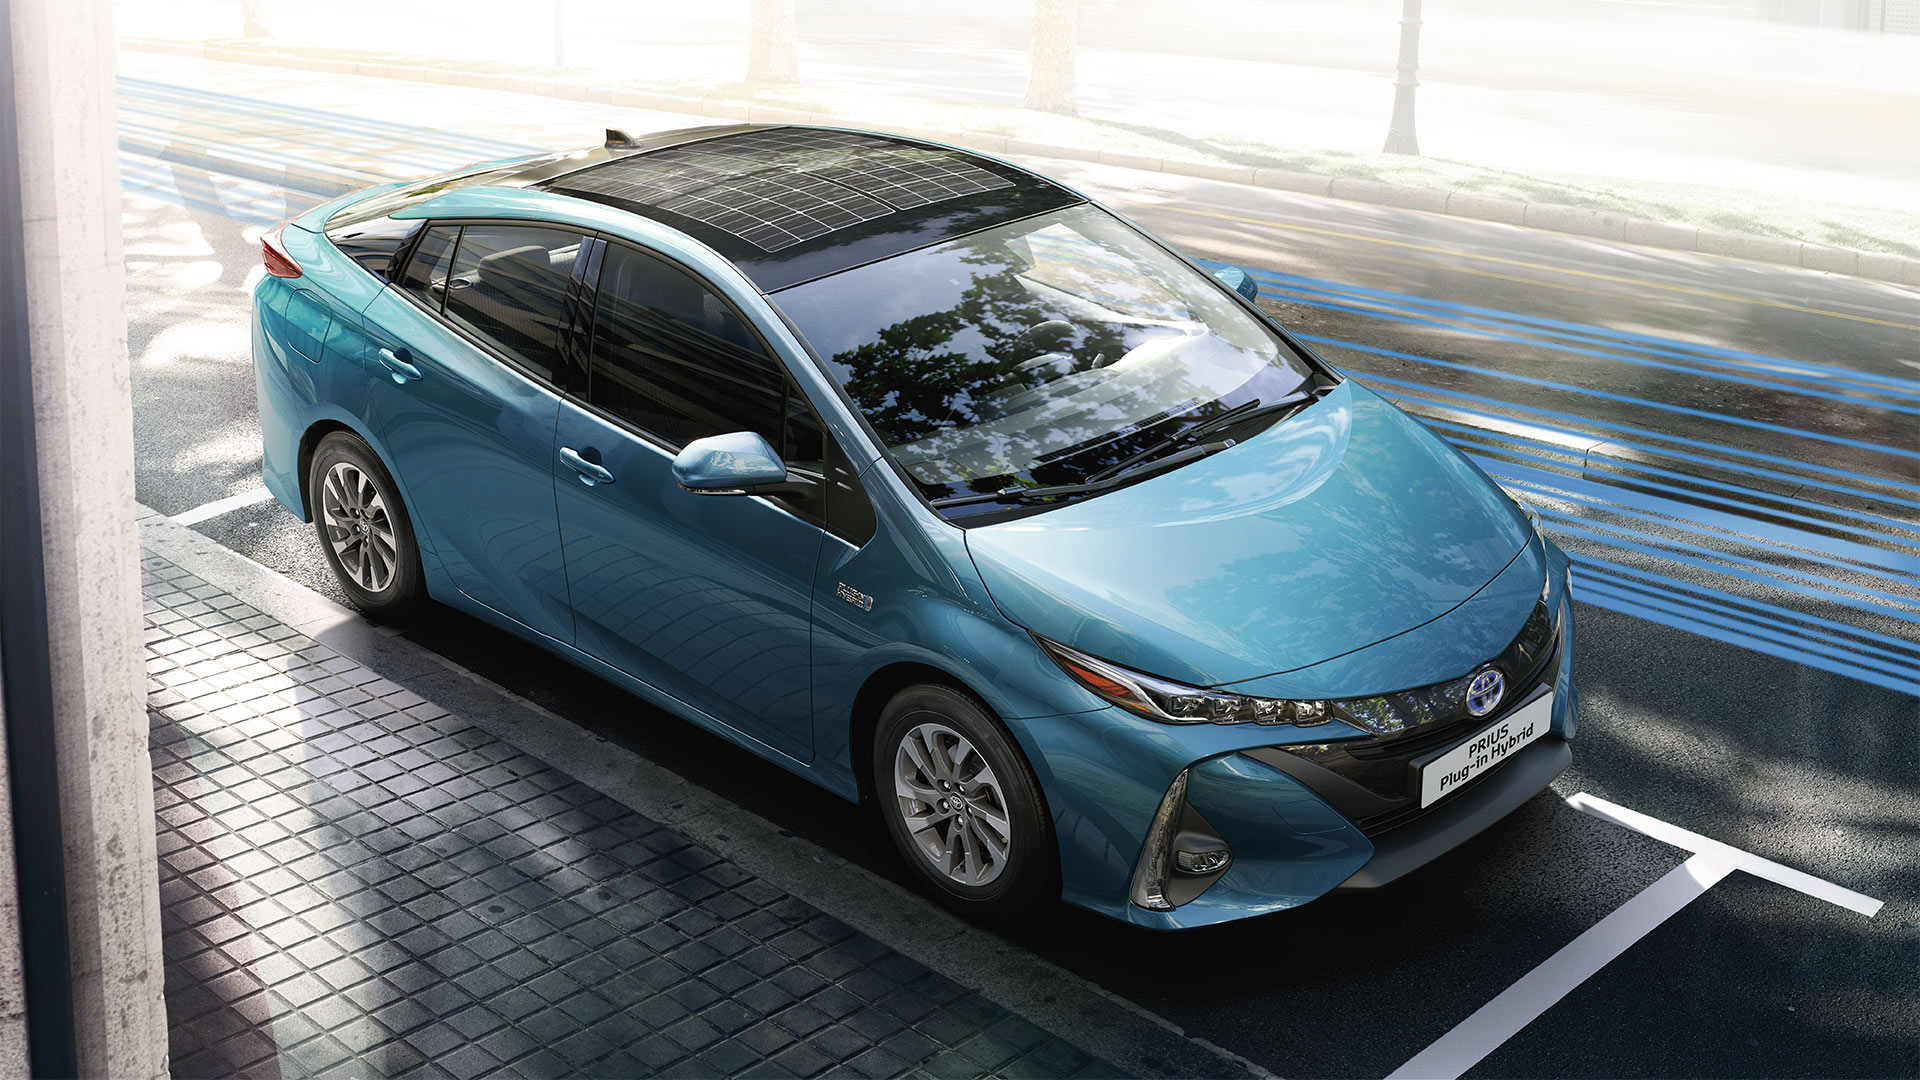 toyota-prius-plug-in-2016-gallery-04-full_tcm-1016-1685339